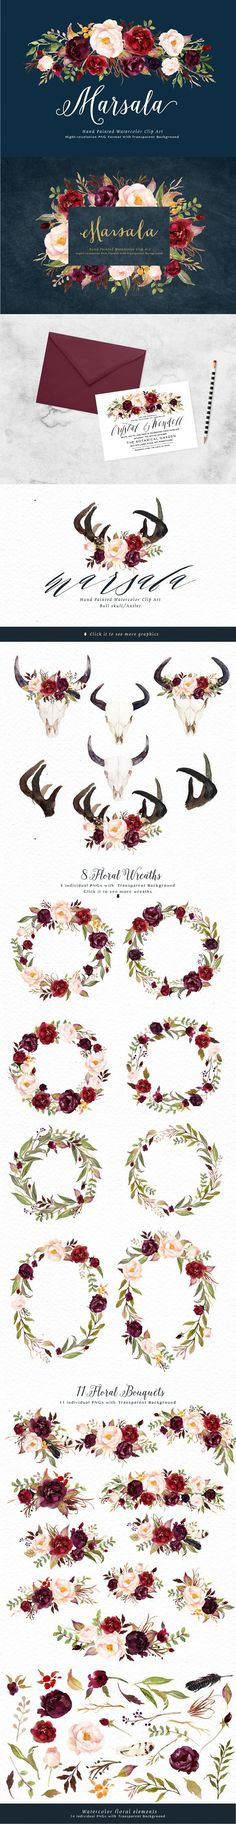 Watercolor flower Clip Art-Marsala. Watercolor Flowers